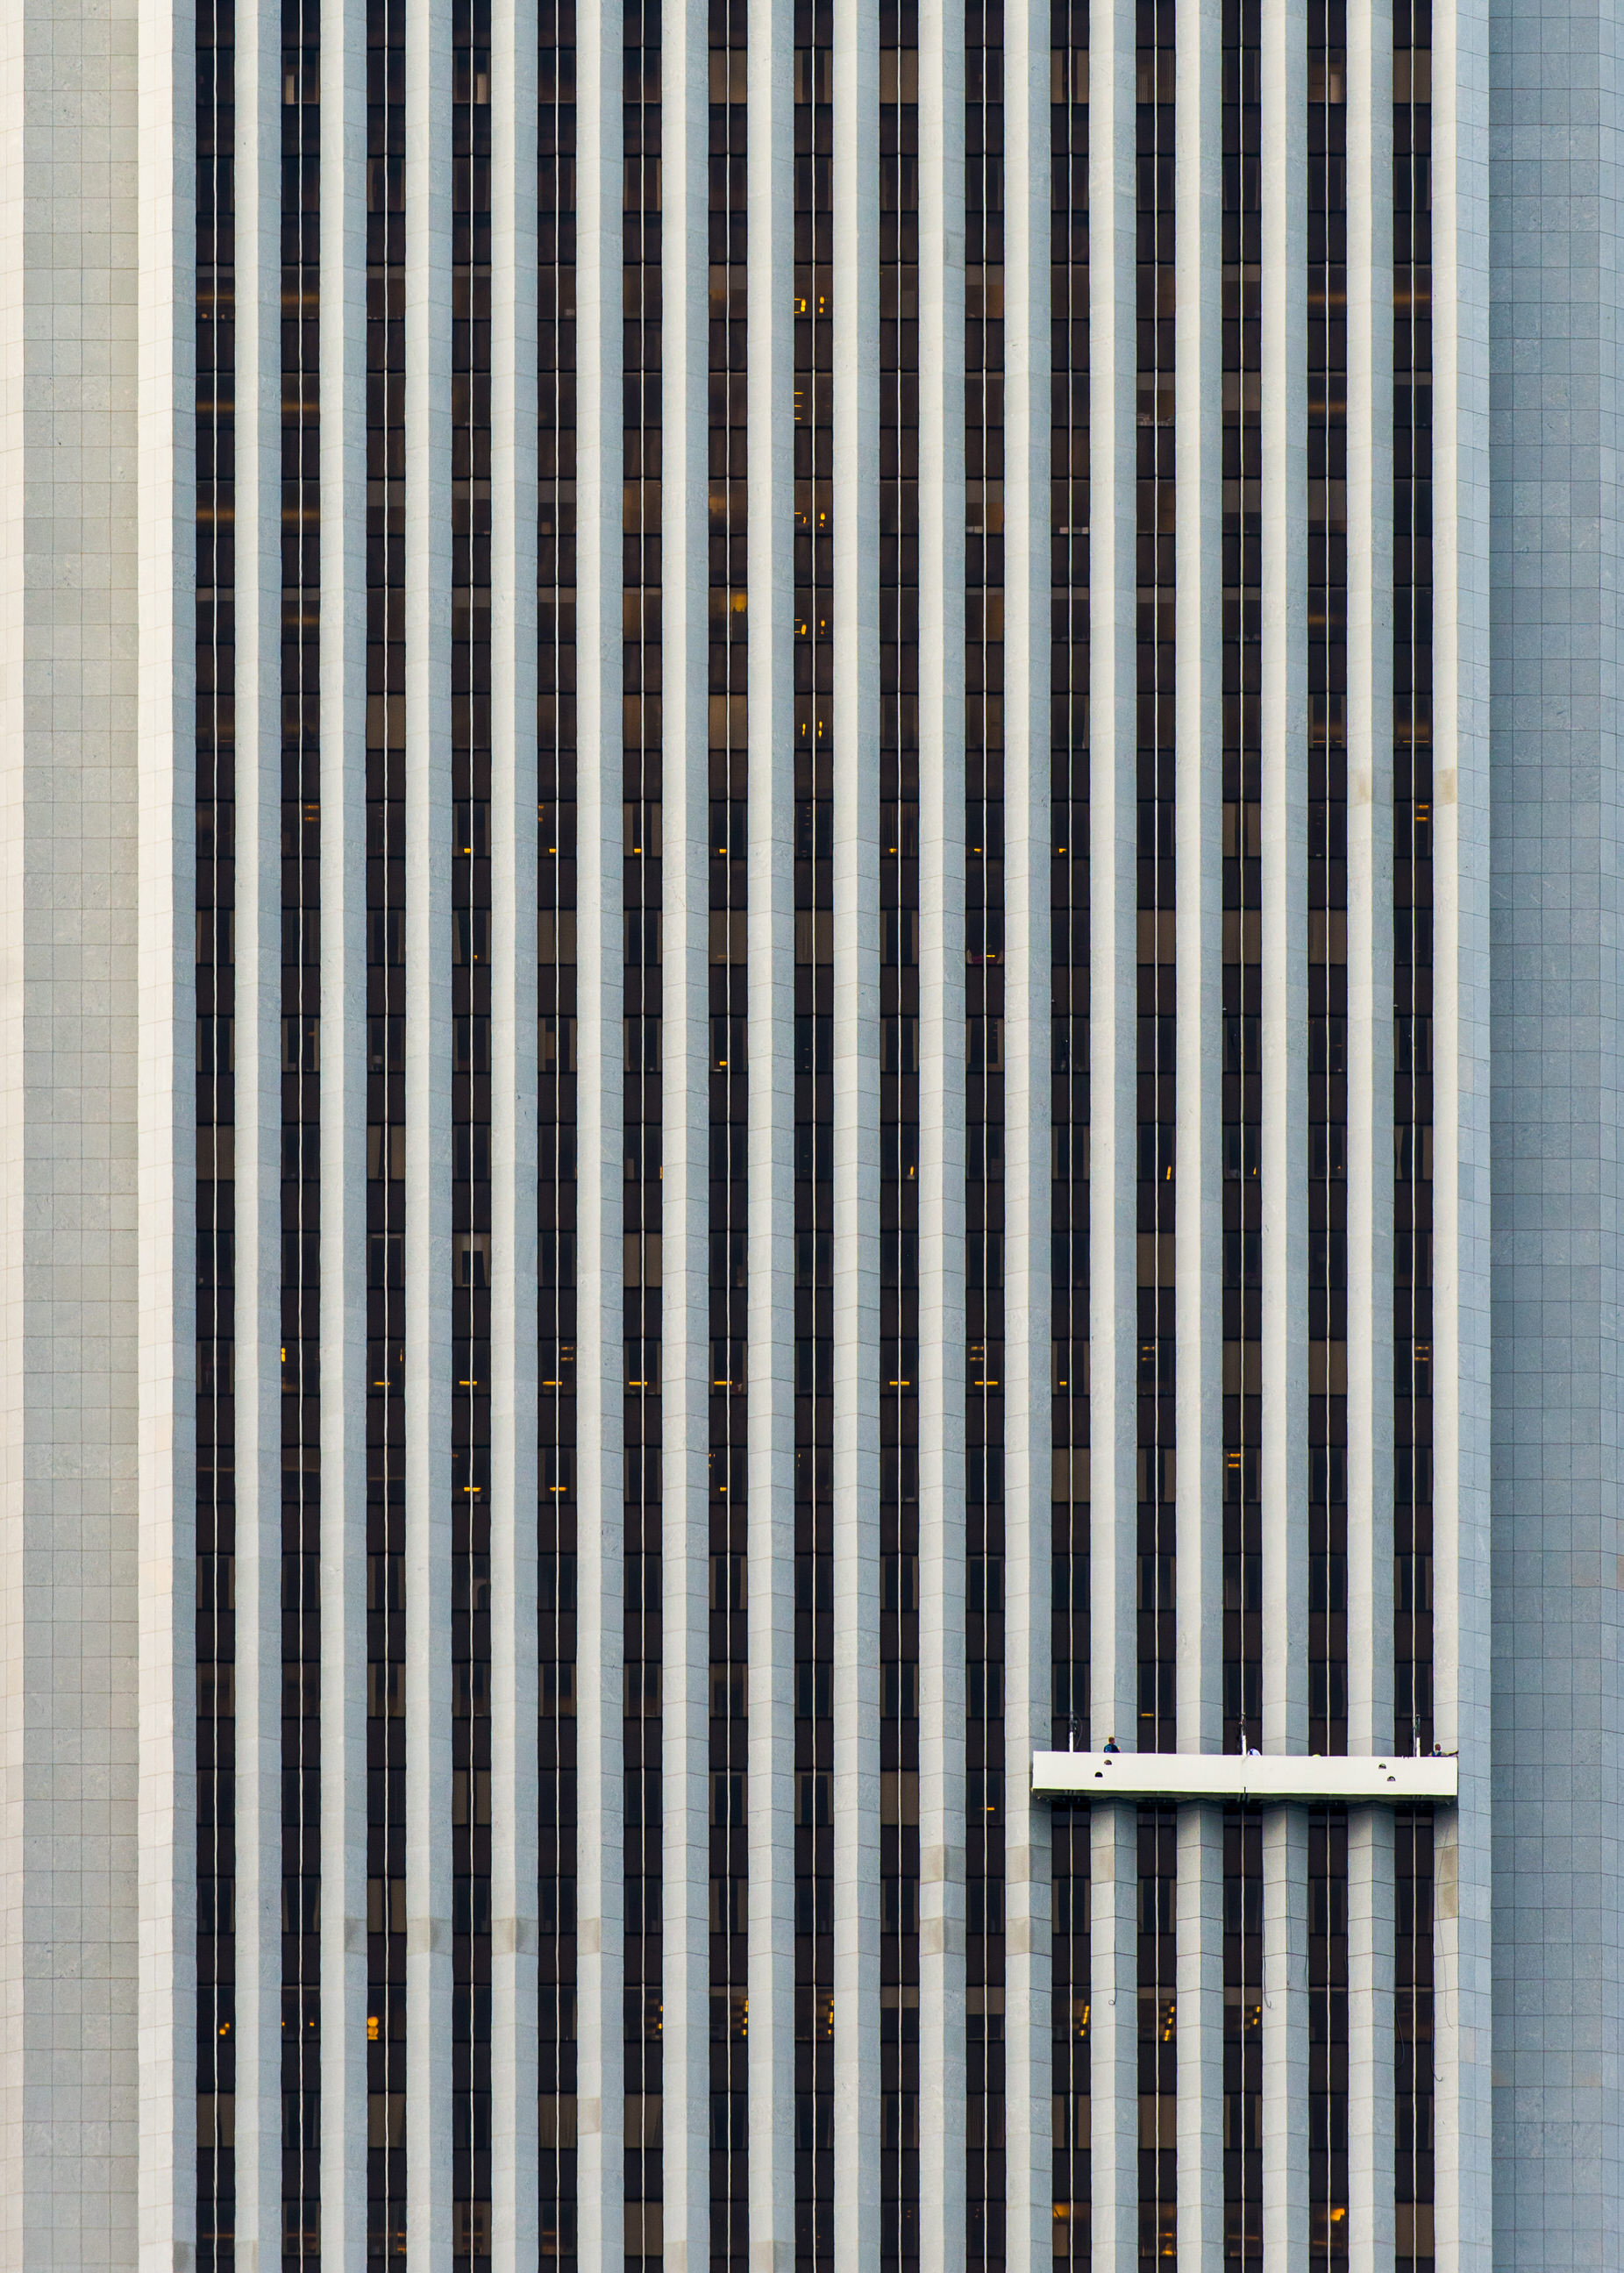 Aon Tower